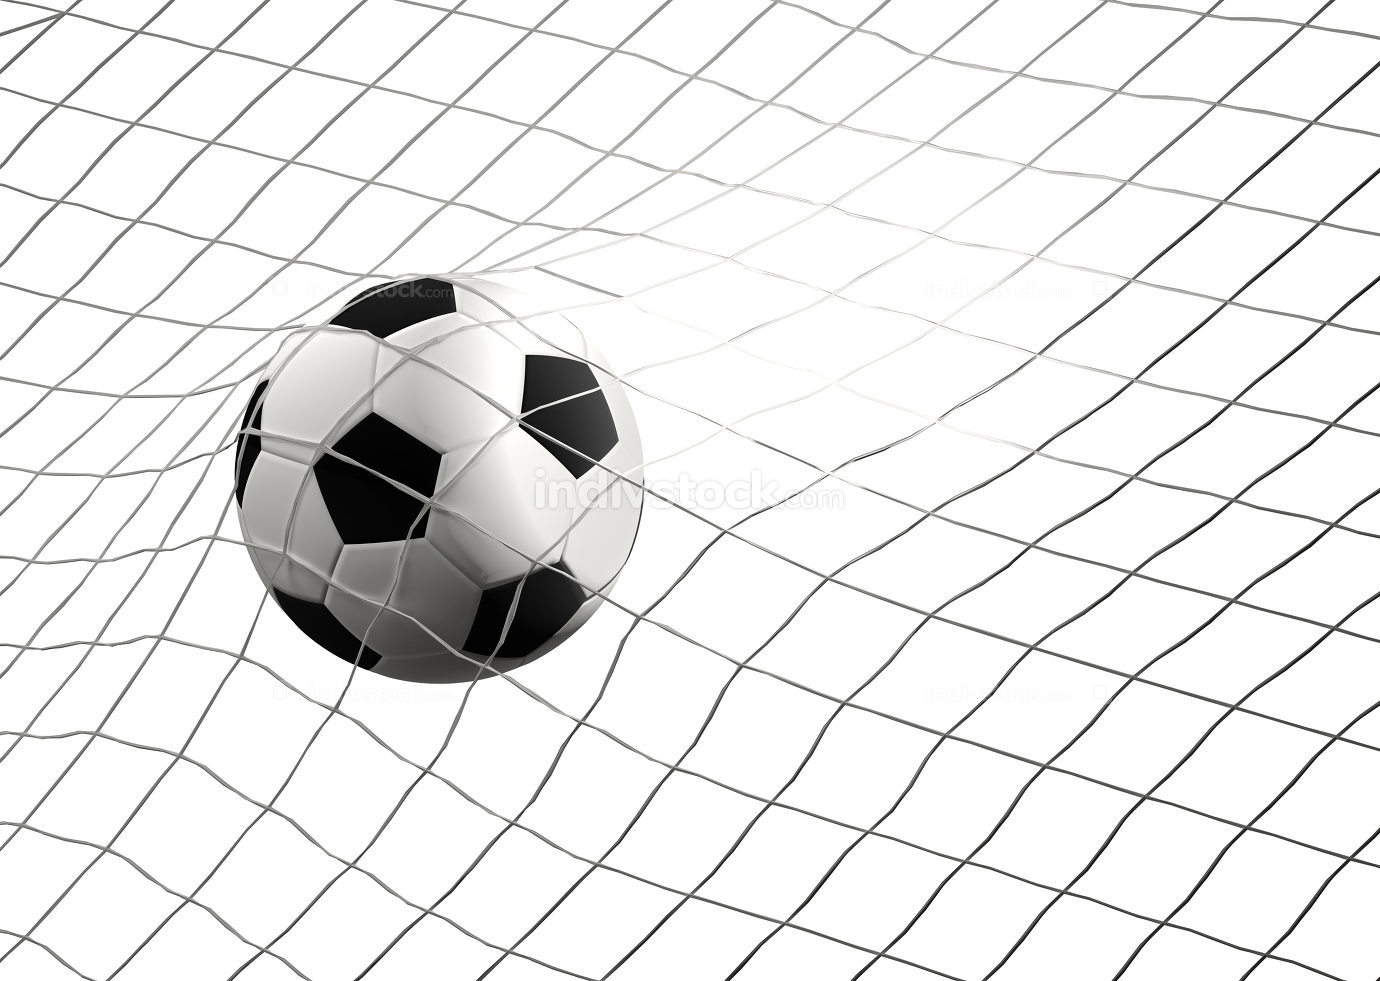 soccer goal with soccer ball at soccer net 3d illustration